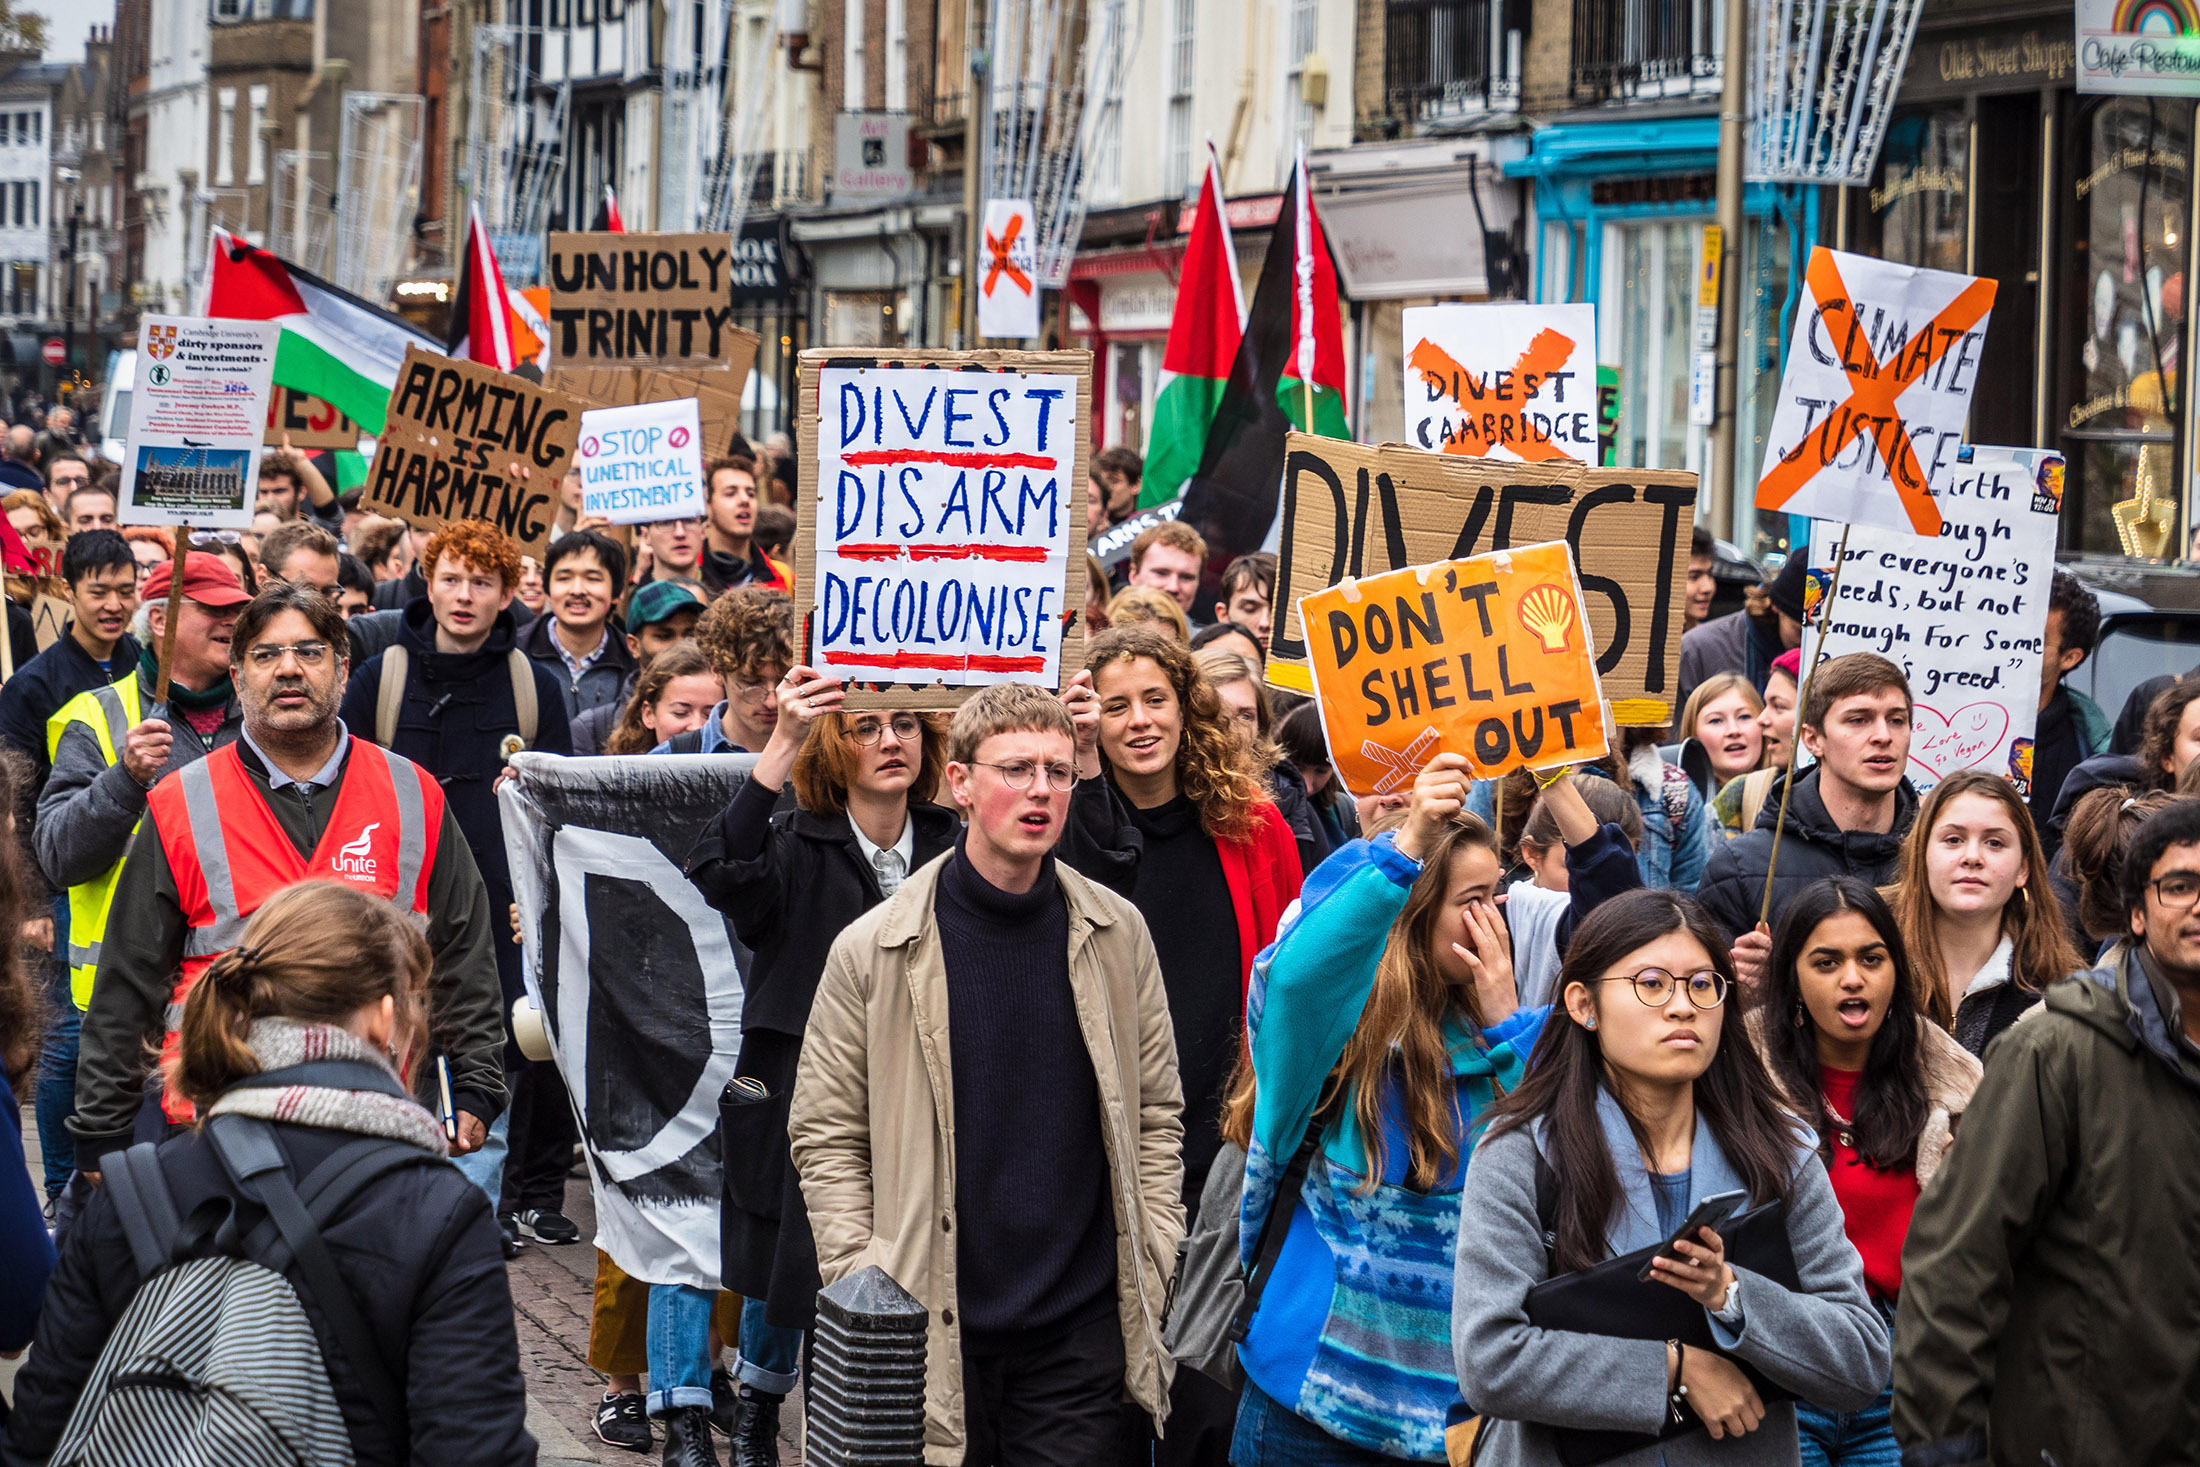 Cambridge University students march through central Cambridge demanding the university divest its unethical investments in arms and fossil fuels companies in 2018.